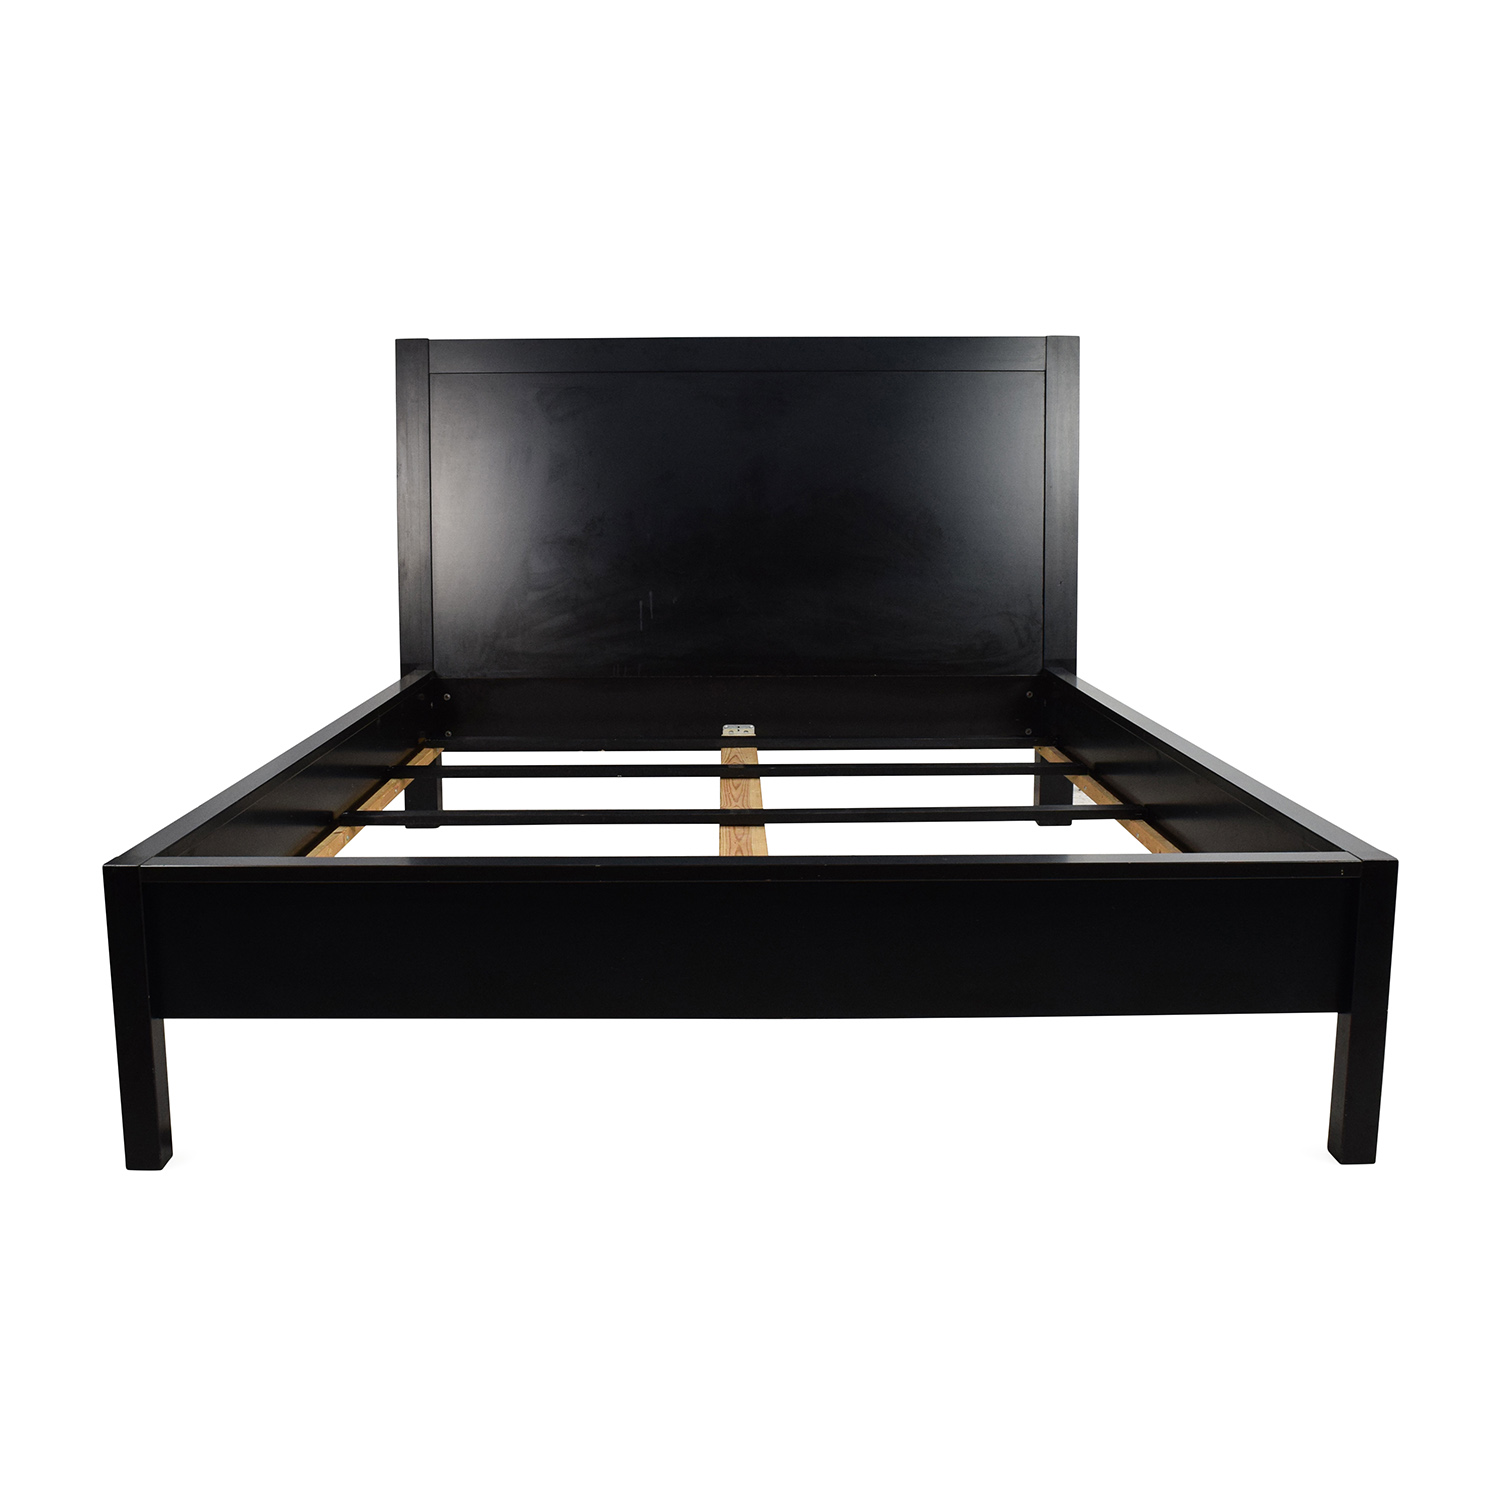 Black Solid Wood Queen Sized Bed Frame Frames